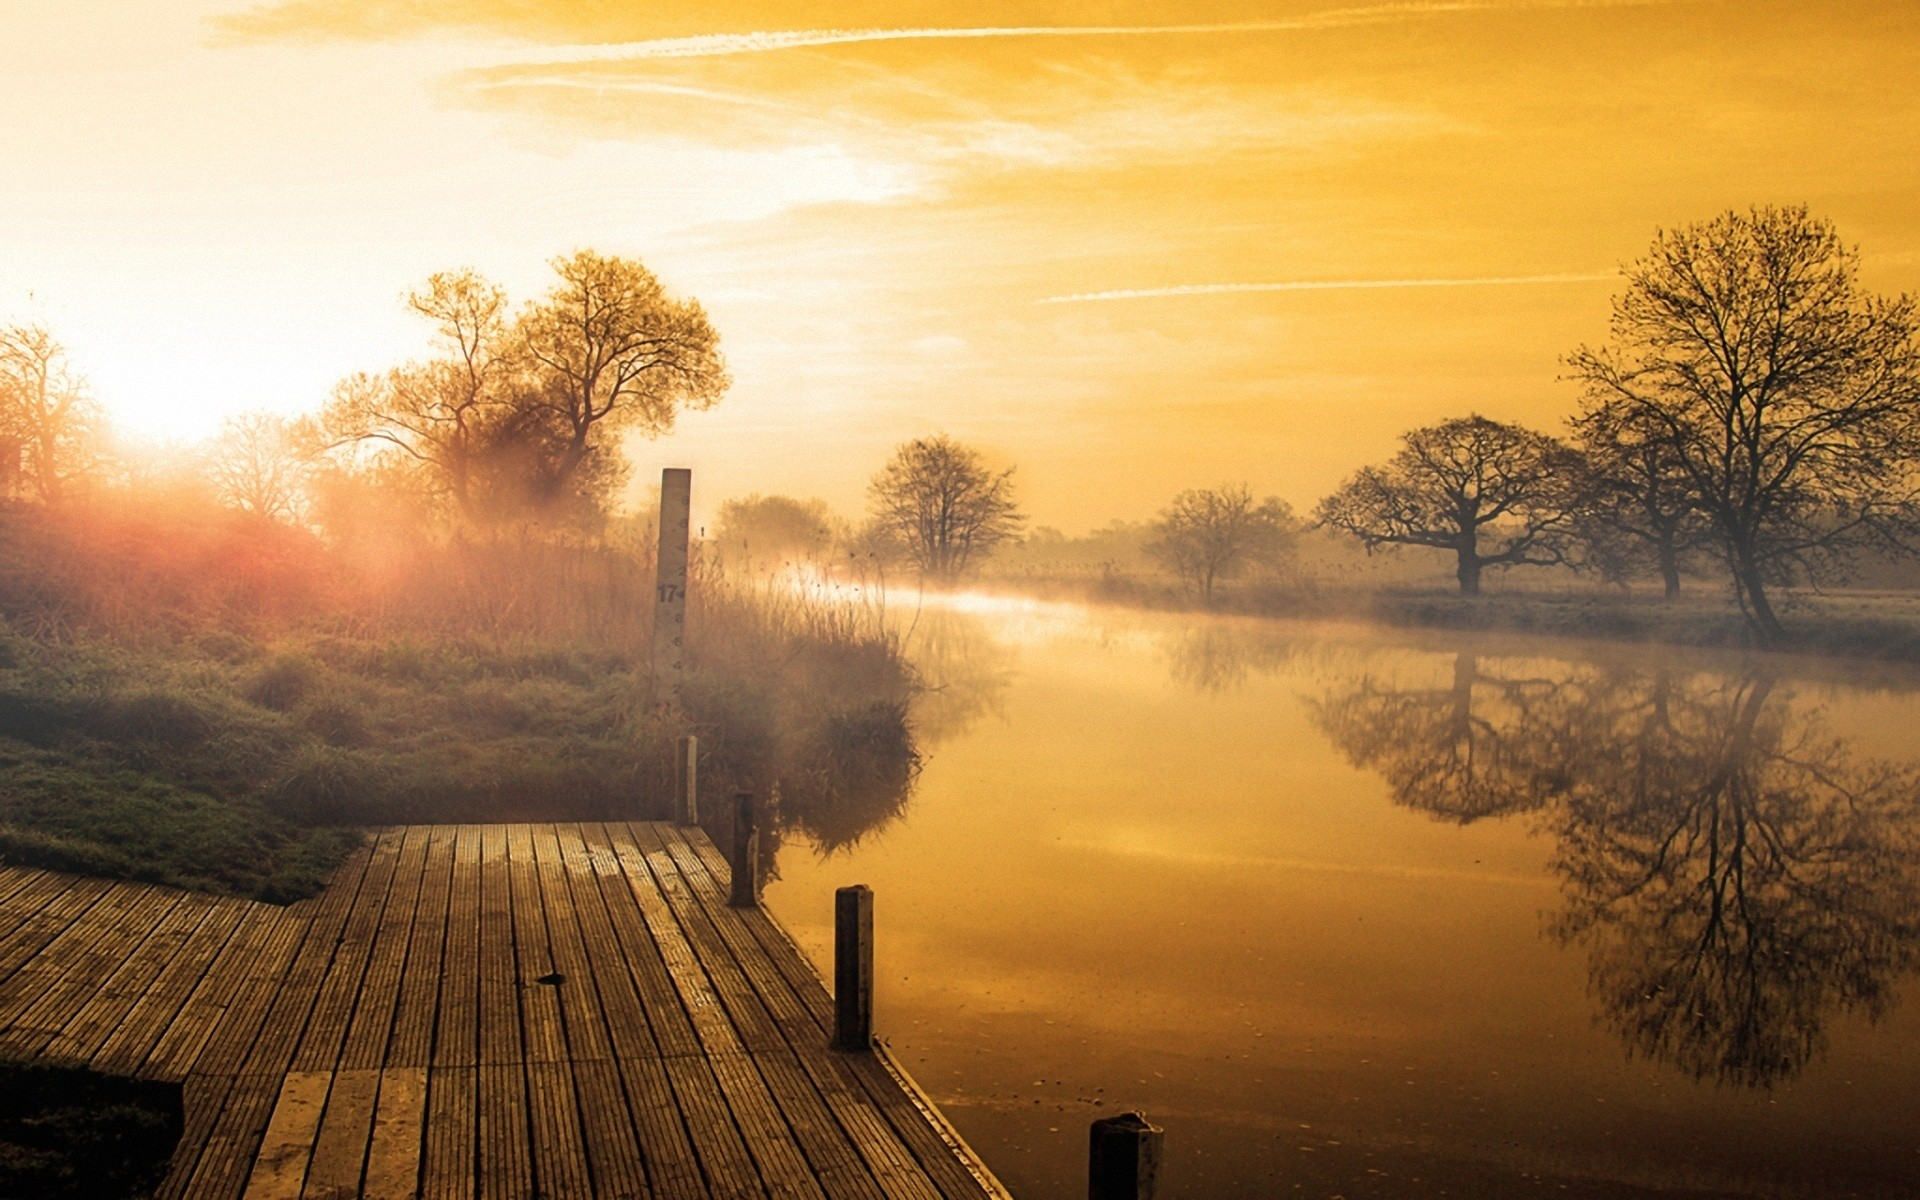 Rivers: Wooden Wood Earth Dock River Sunset Trees Golden Nice ...